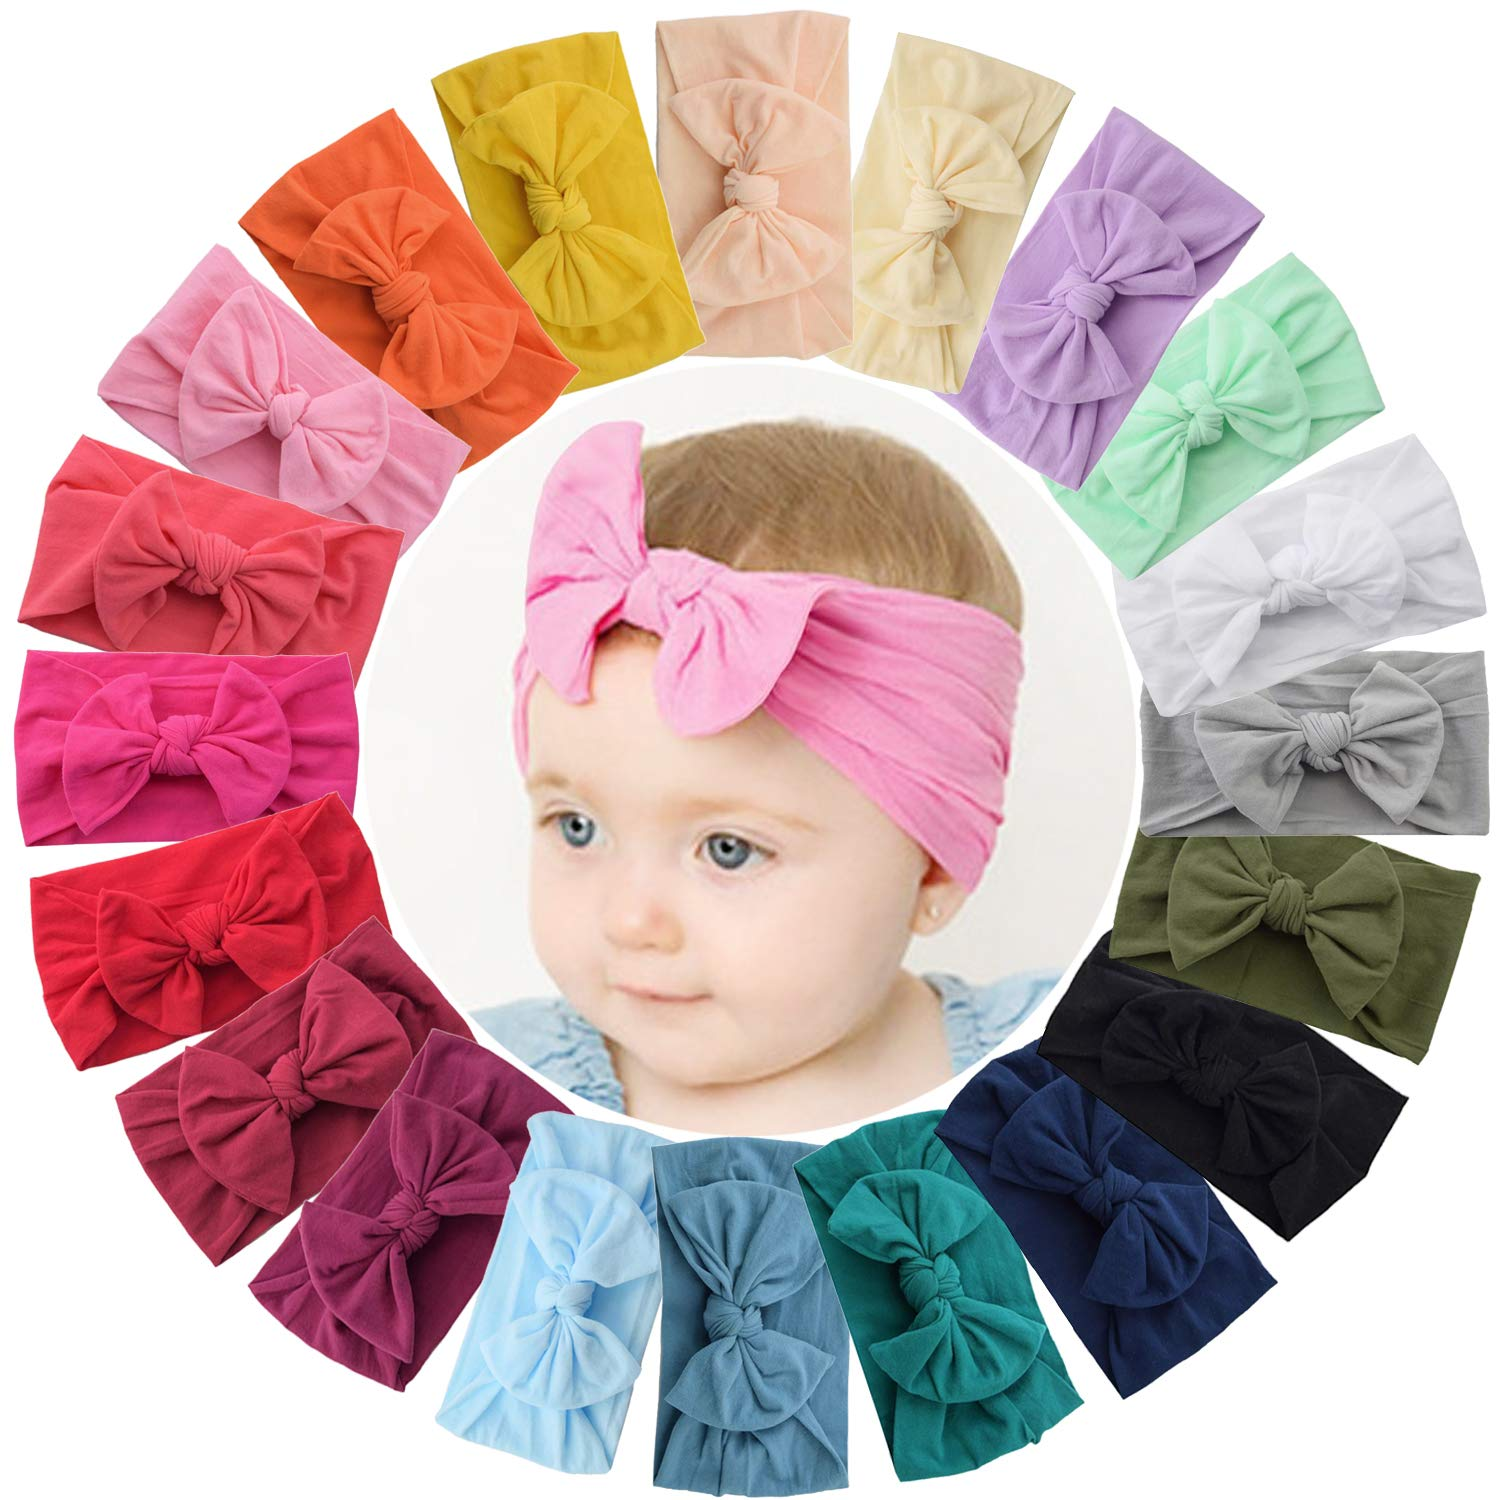 WillingTee 20 Colors Baby Girl Headbands and 4.5 Inch Bows Soft Elastic Nylon Hairbands Hair Bow Hair Accessories for Newborn Infant Toddler Girls Kids